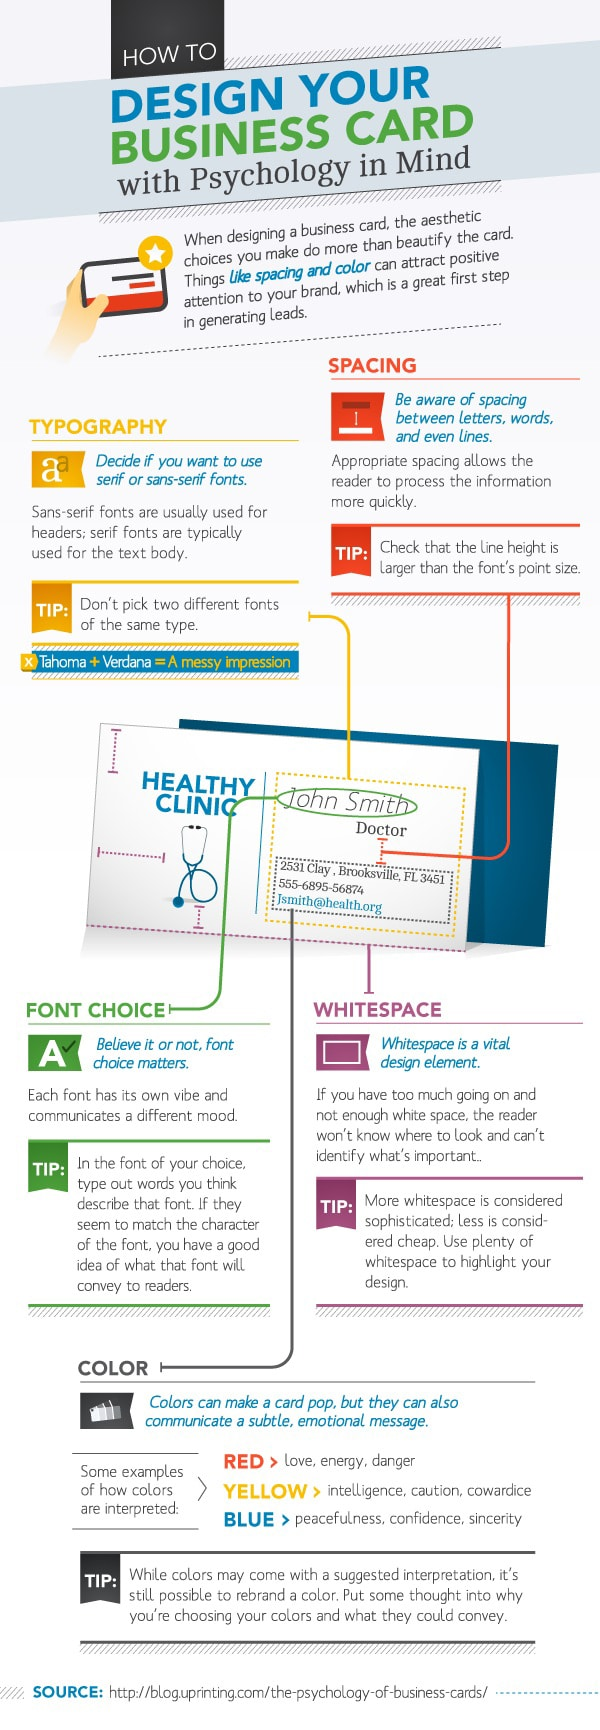 psychology-business-card-design-infographic